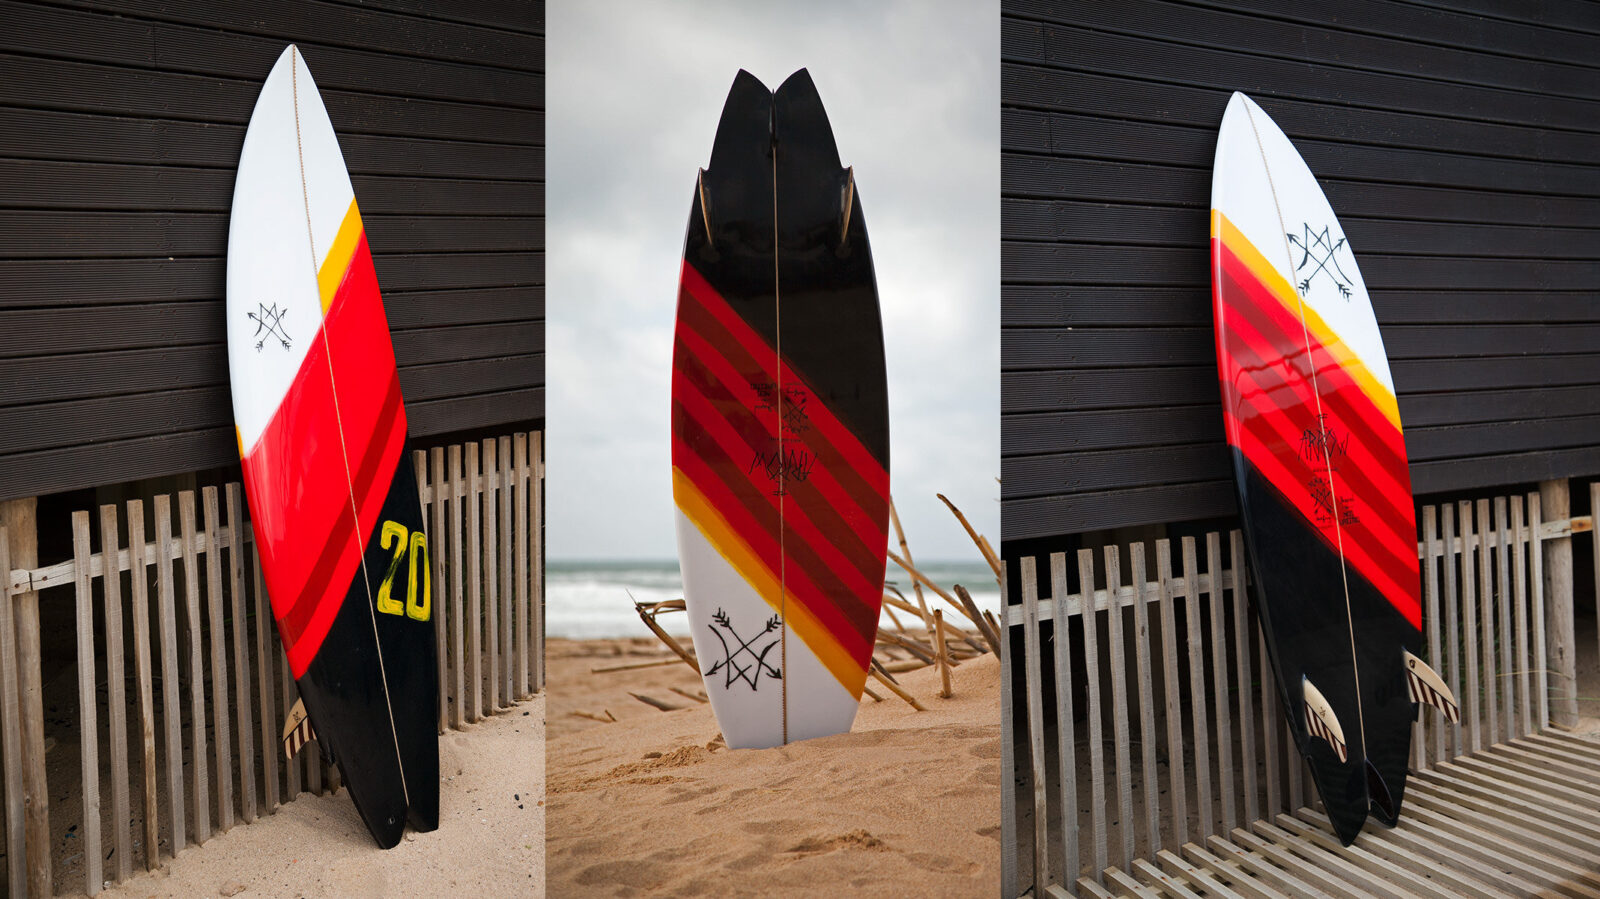 The Maria Riding Company Arrow Miccosukee Surfboard